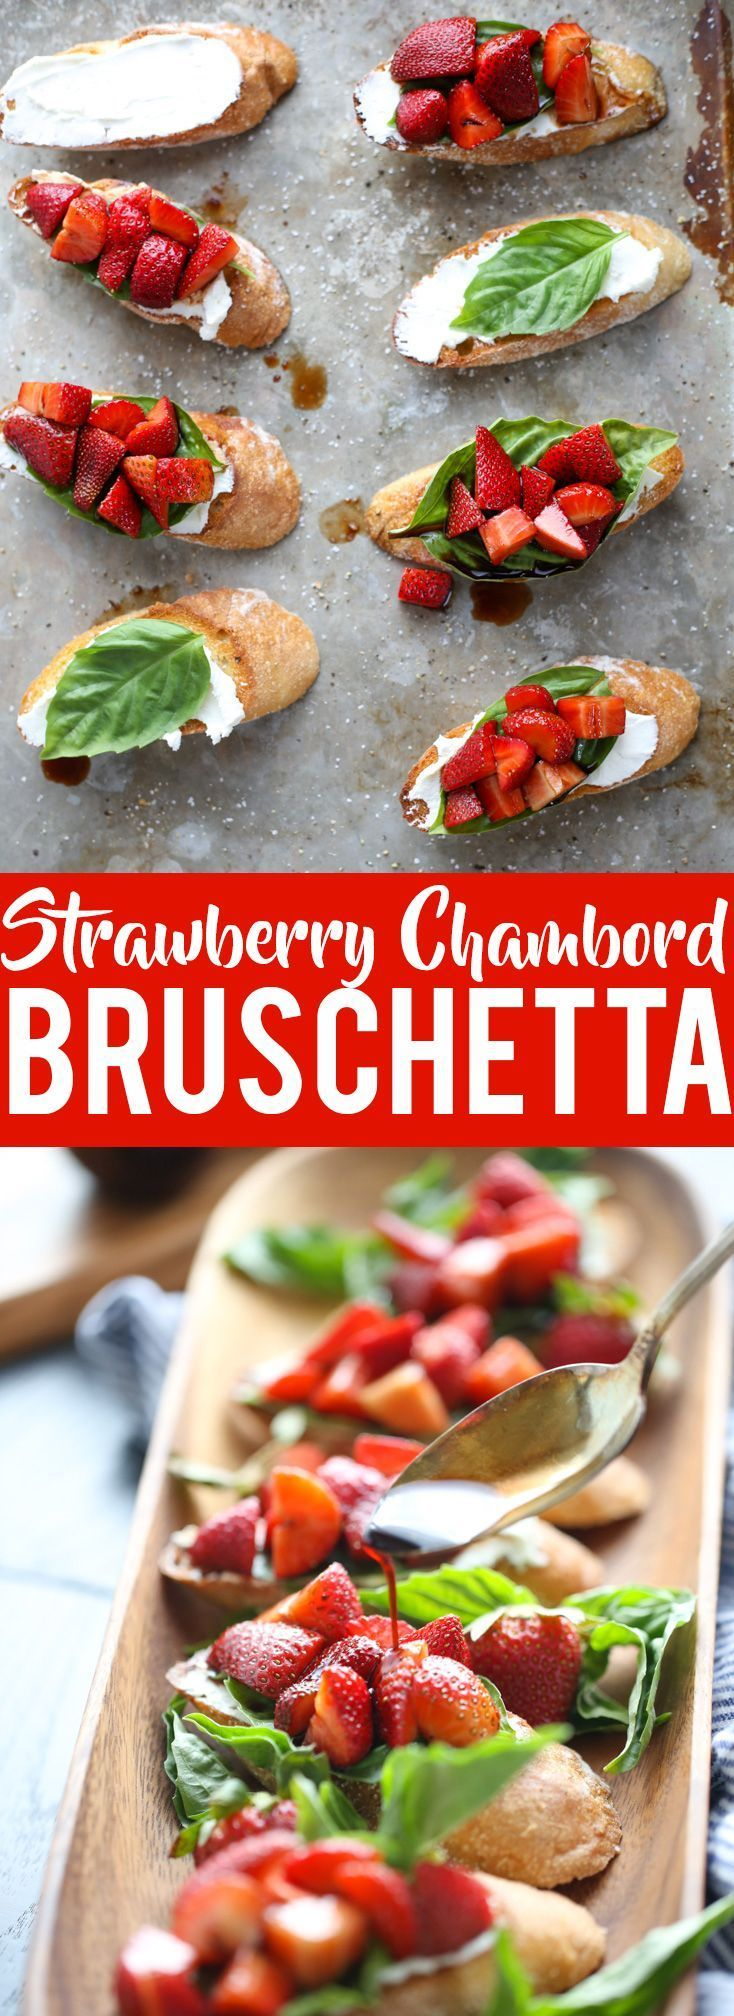 Strawberry Chambord Bruschetta ~ whipped cheese toasts are a gorgeous appetizer, perfect for a brunch, Valentine's Day, bridal shower or drinks on the patio!